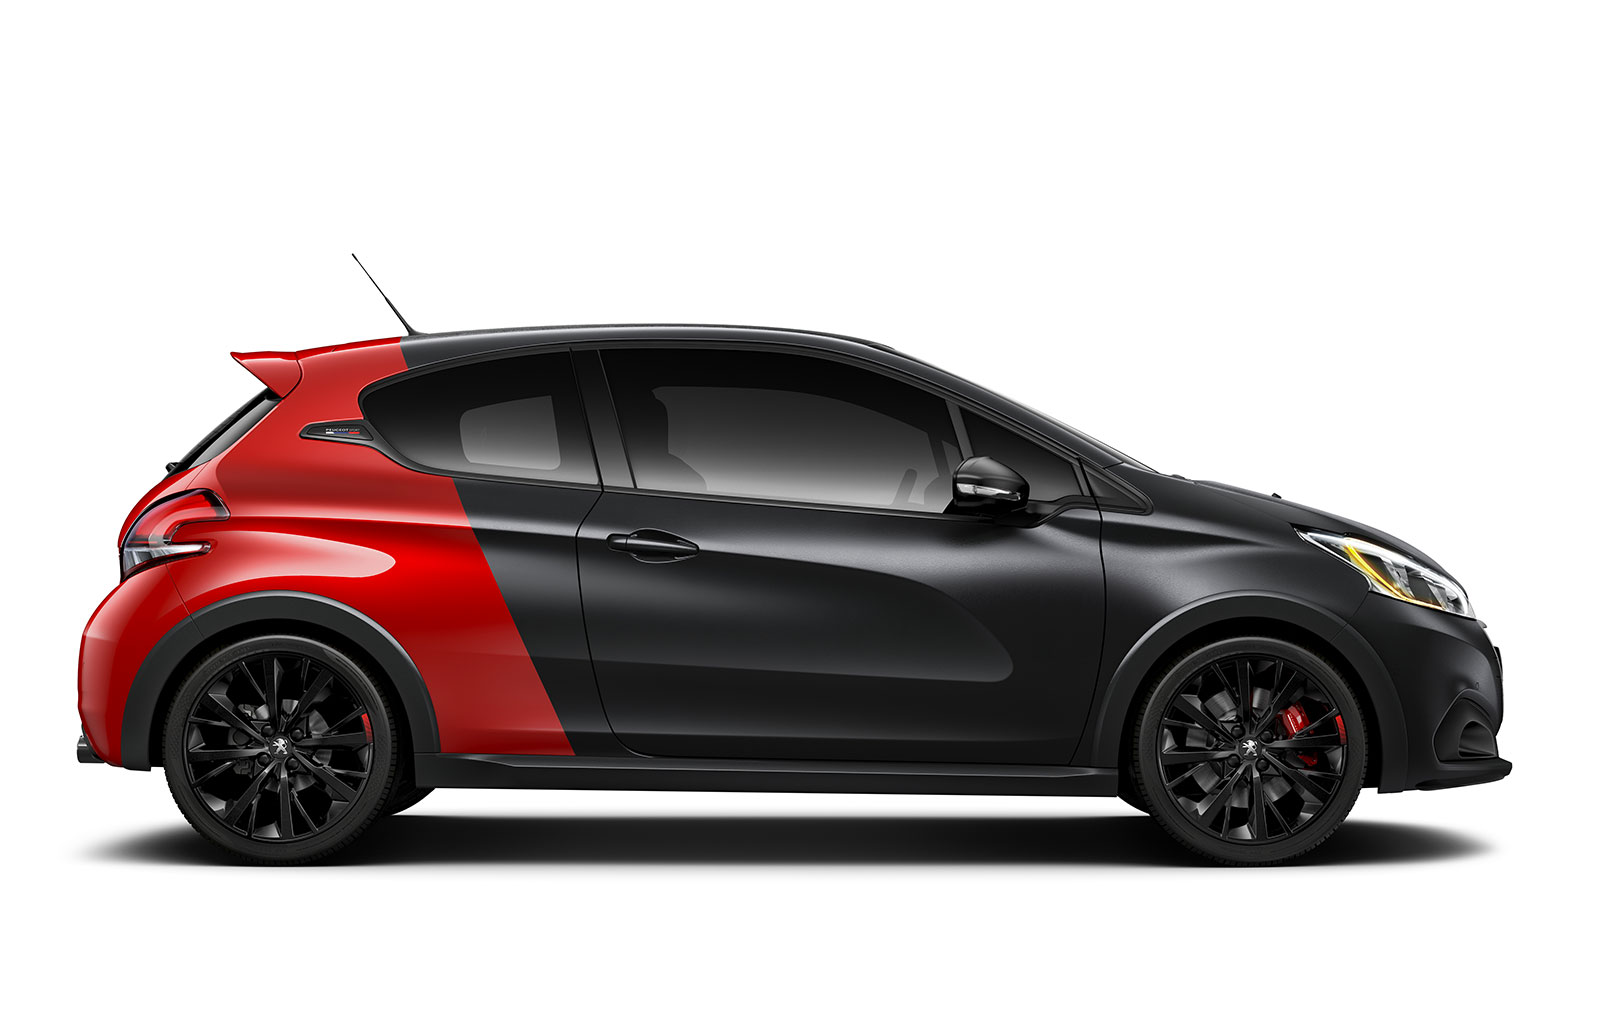 peugeot sport 208 gti rugissage 208 ch pelage noir rouge. Black Bedroom Furniture Sets. Home Design Ideas